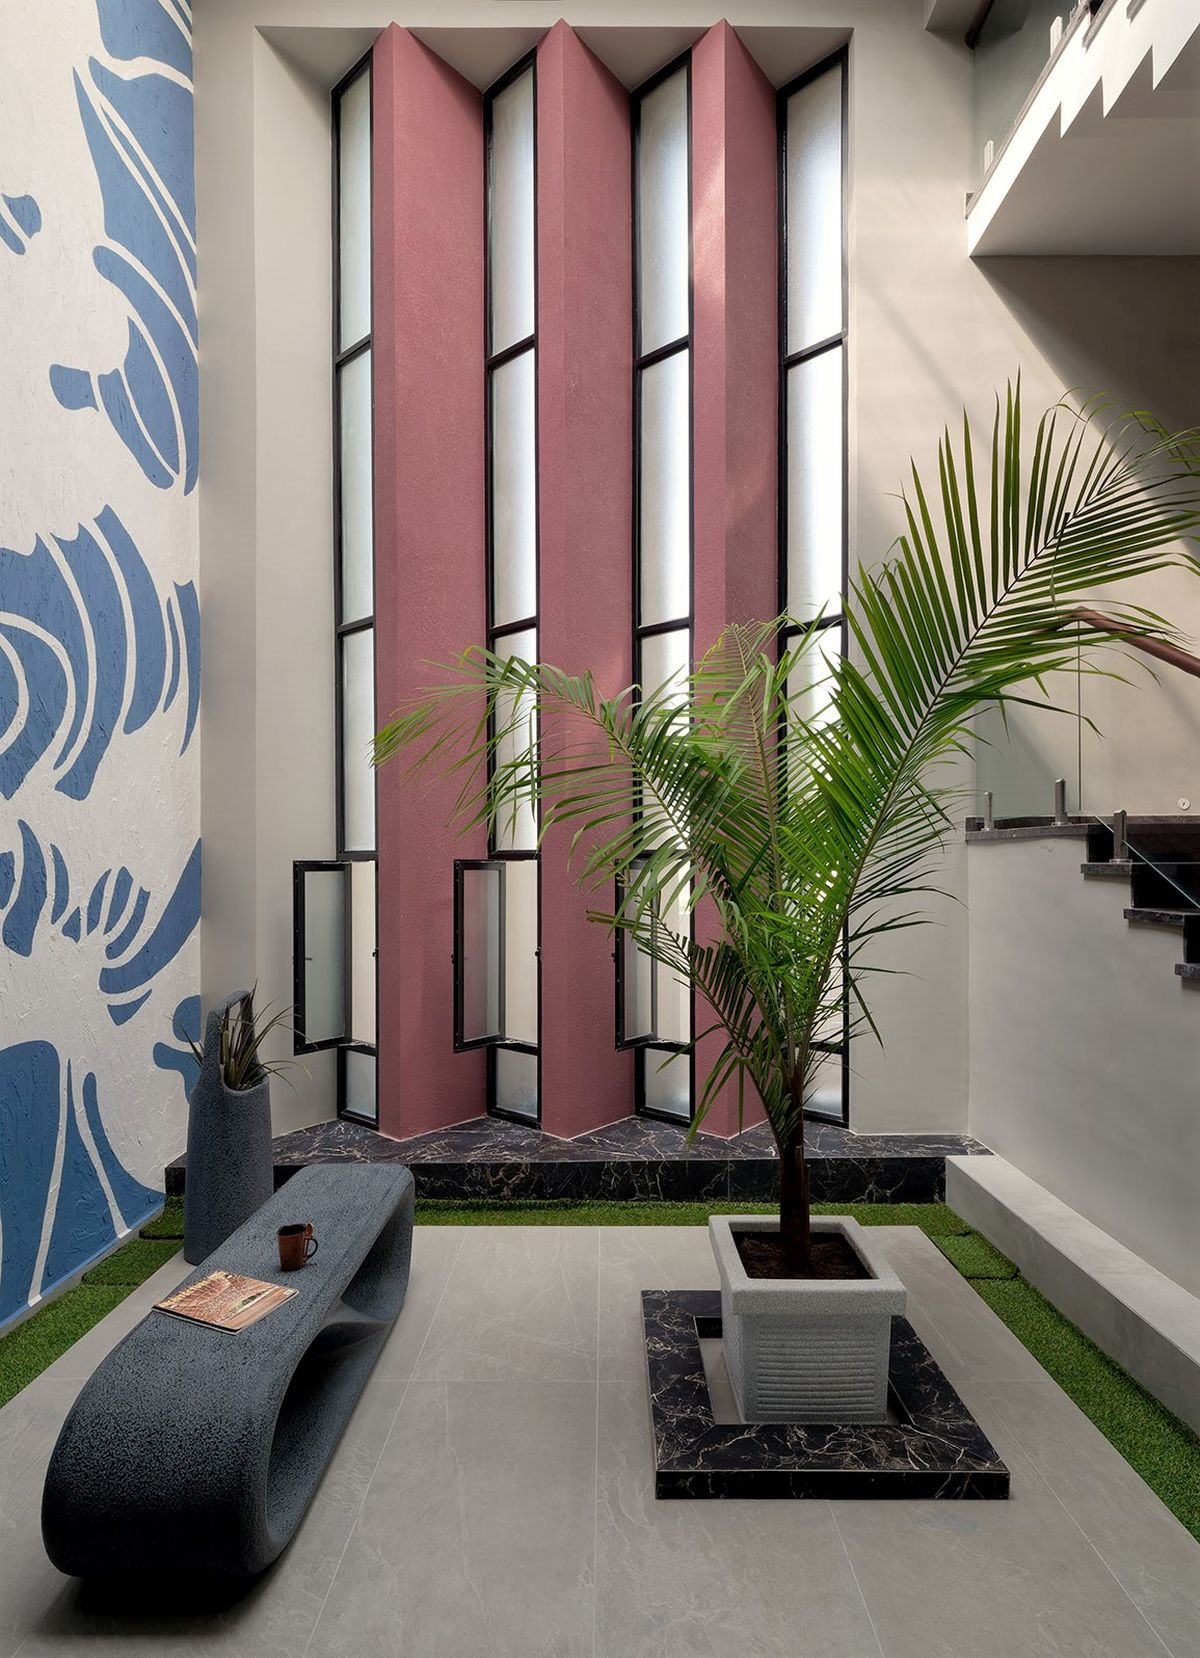 GHEI RESIDENCE at NANDED, MAHARASHTRA, by 4TH AXIS DESIGN STUDIO 6